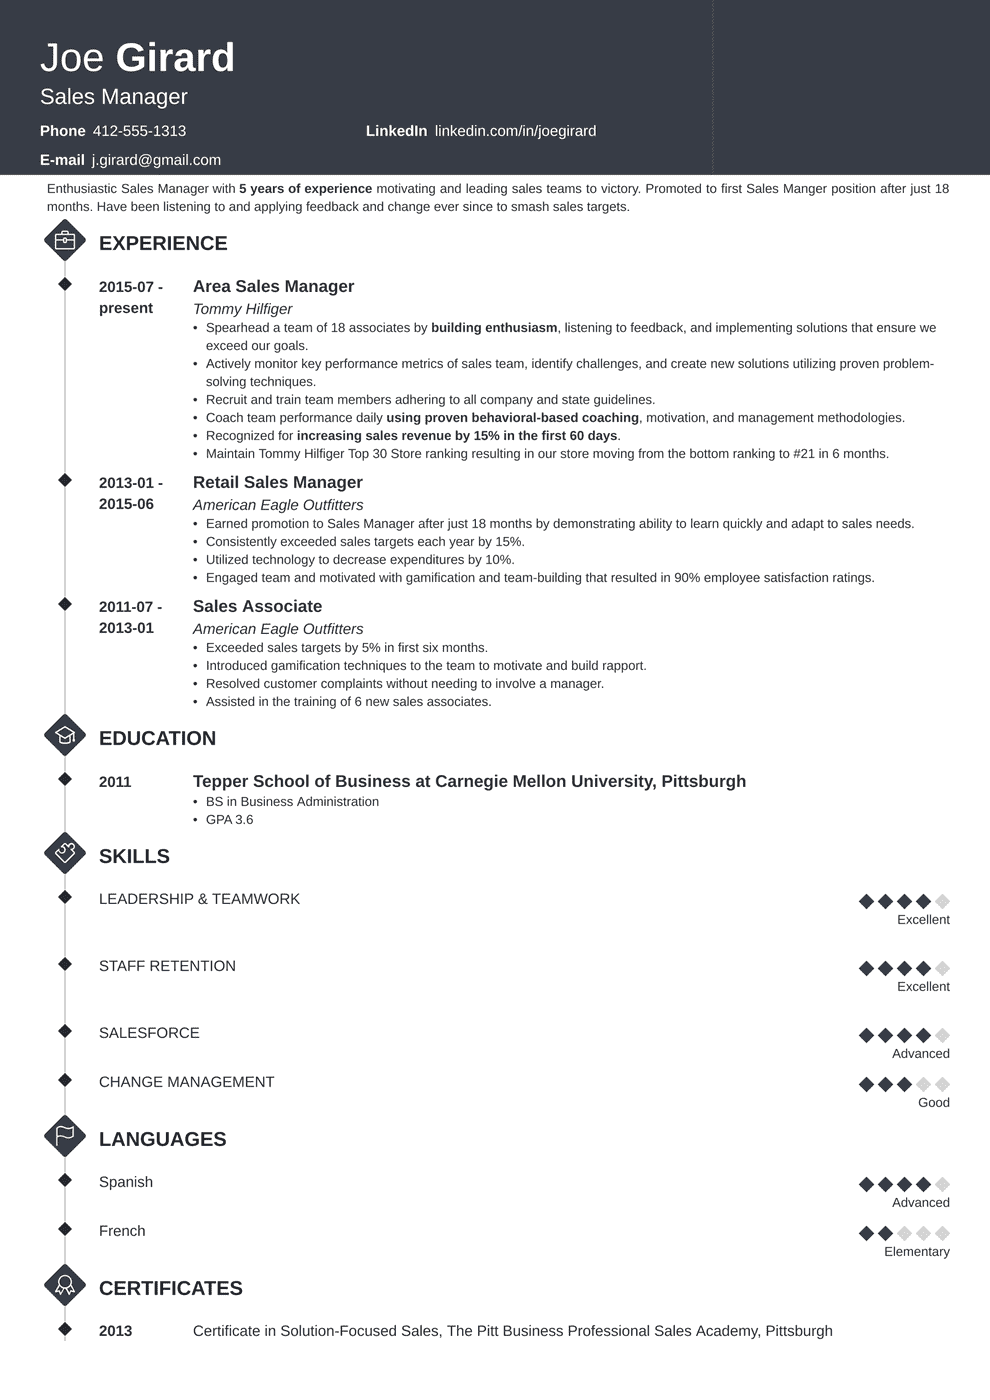 Sales Manager Resume: Sample & Complete Guide [+20 Examples]